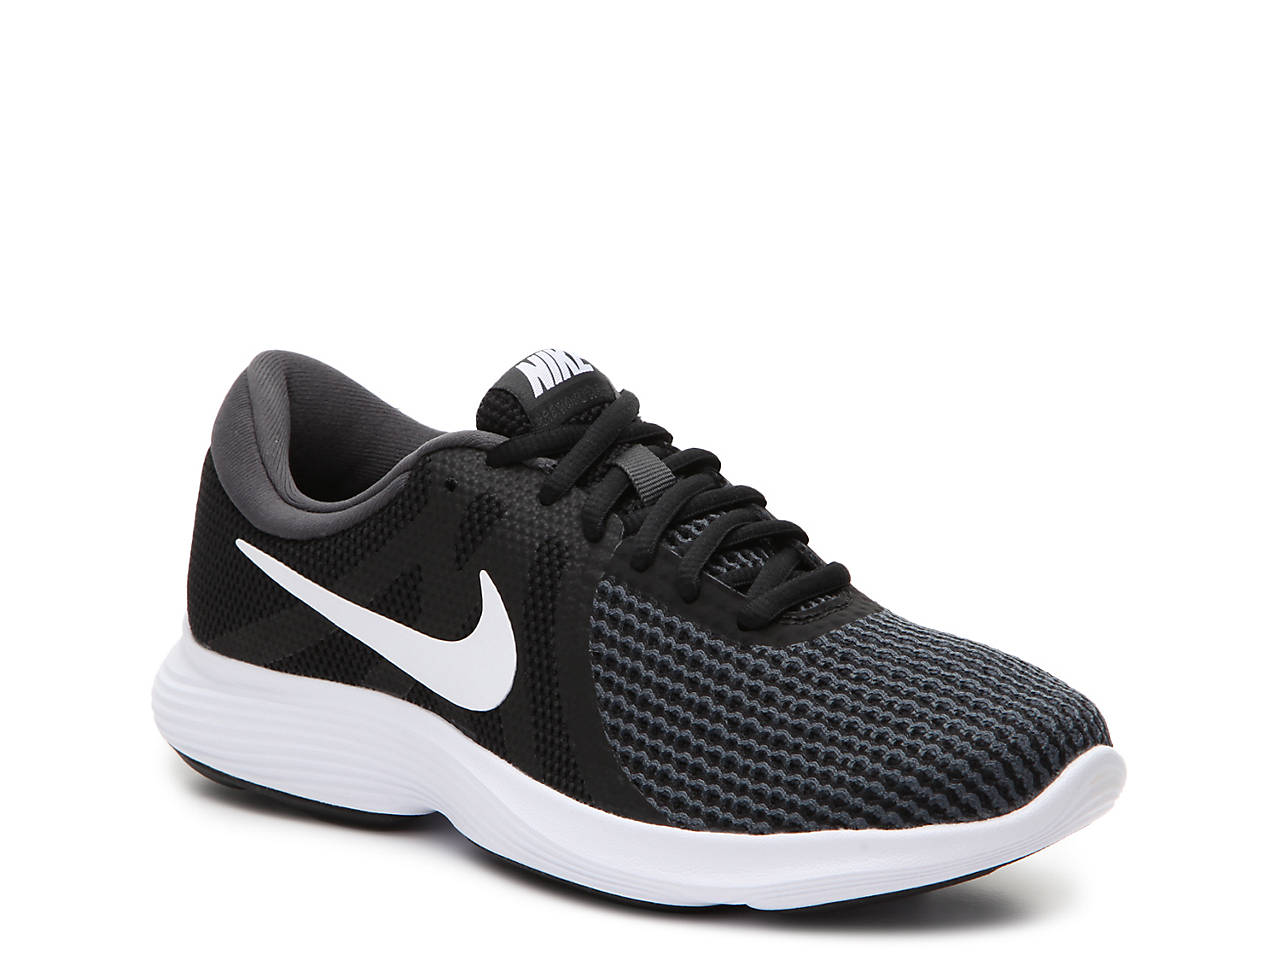 dd62b7d736ad0 Nike Revolution 4 Lightweight Running Shoe - Women's Women's Shoes | DSW